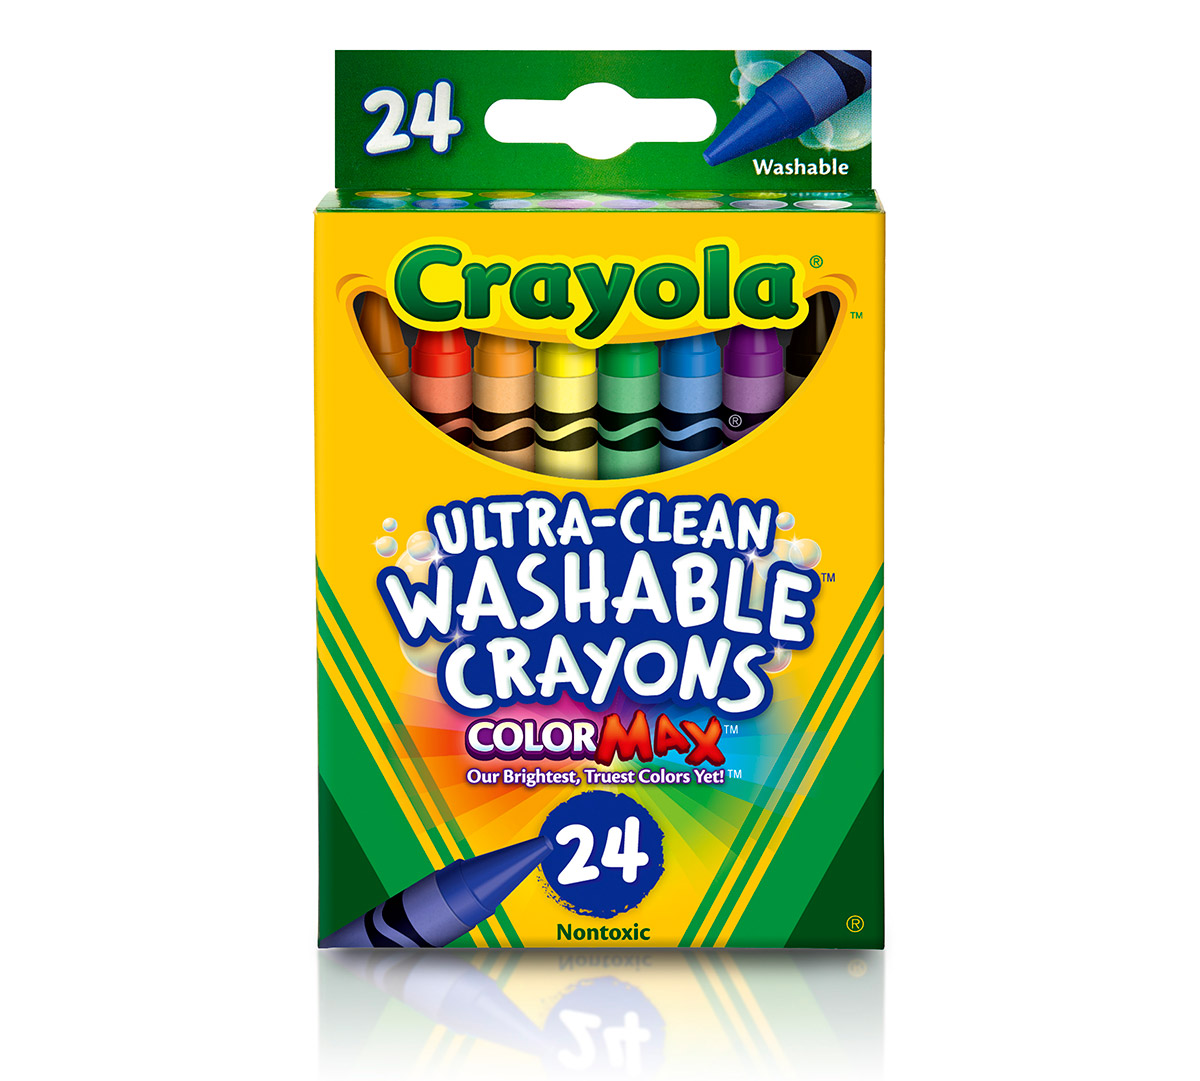 Moana coloring pages crayola - Ultra Clean Washable Crayons 24 Ct